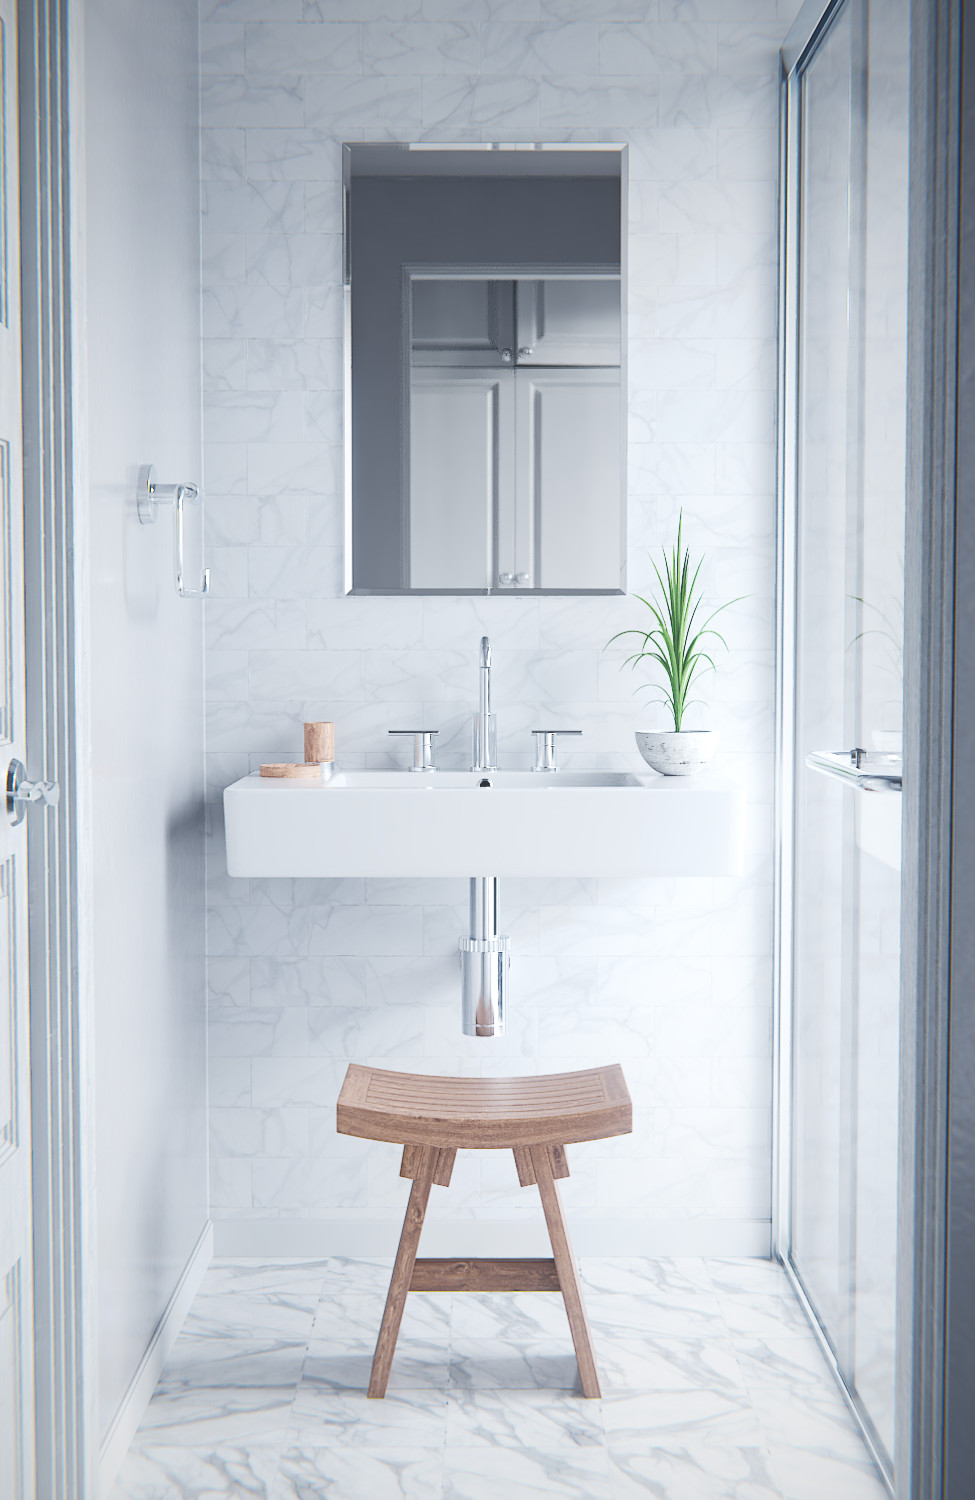 A clean, white bathroom, but still enough character to be interesting. Created by  Michał Demps  using the new Marble materials. Made with Blender.